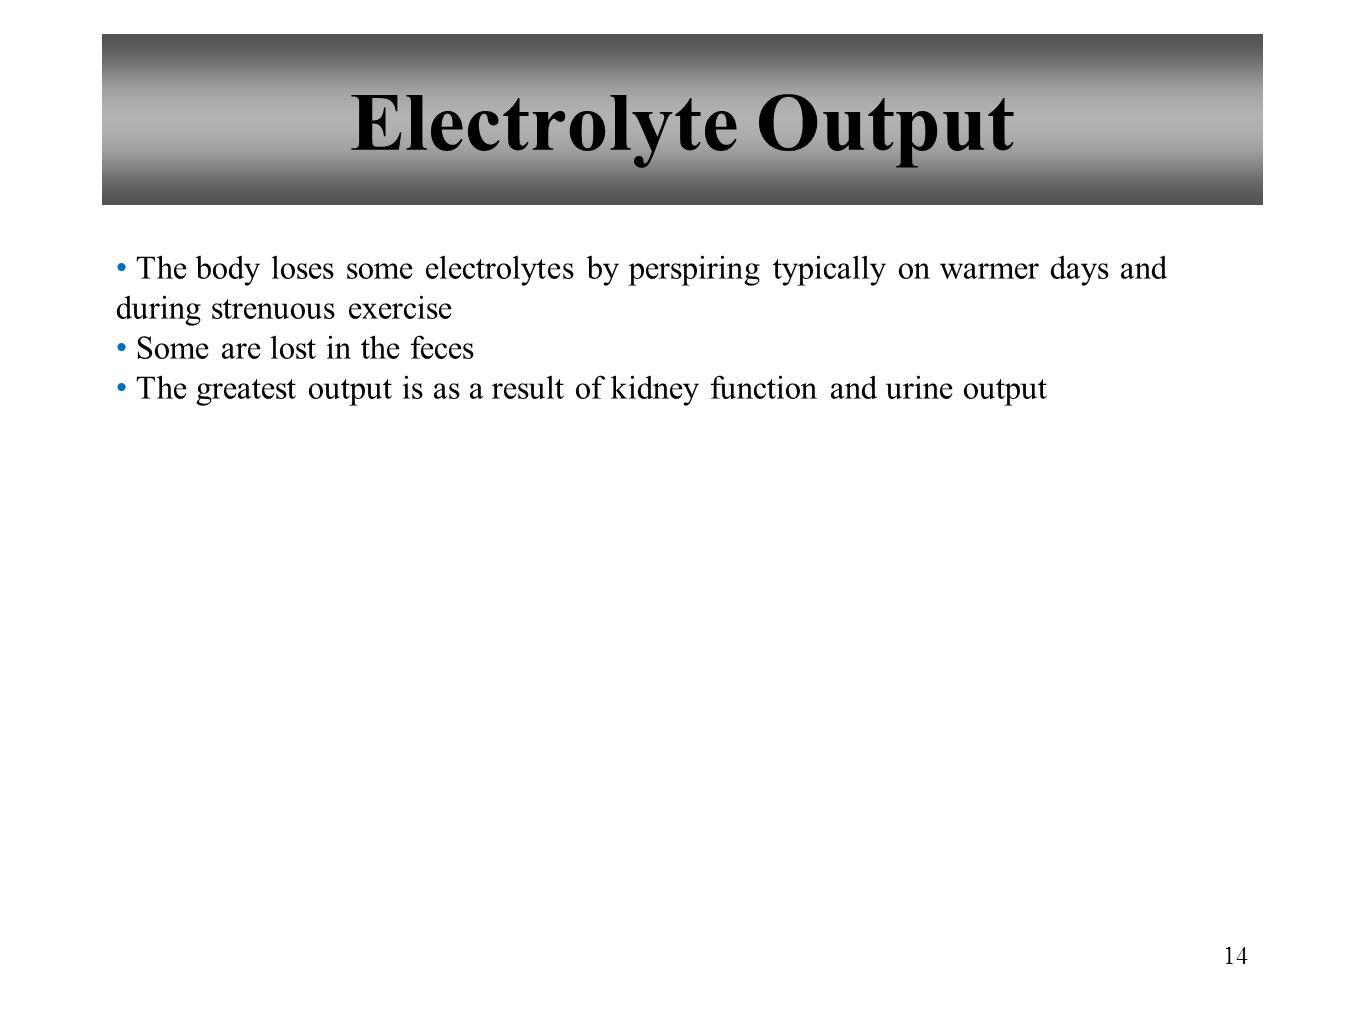 Electrolyte Output The body loses some electrolytes by perspiring typically on warmer days and during strenuous exercise.